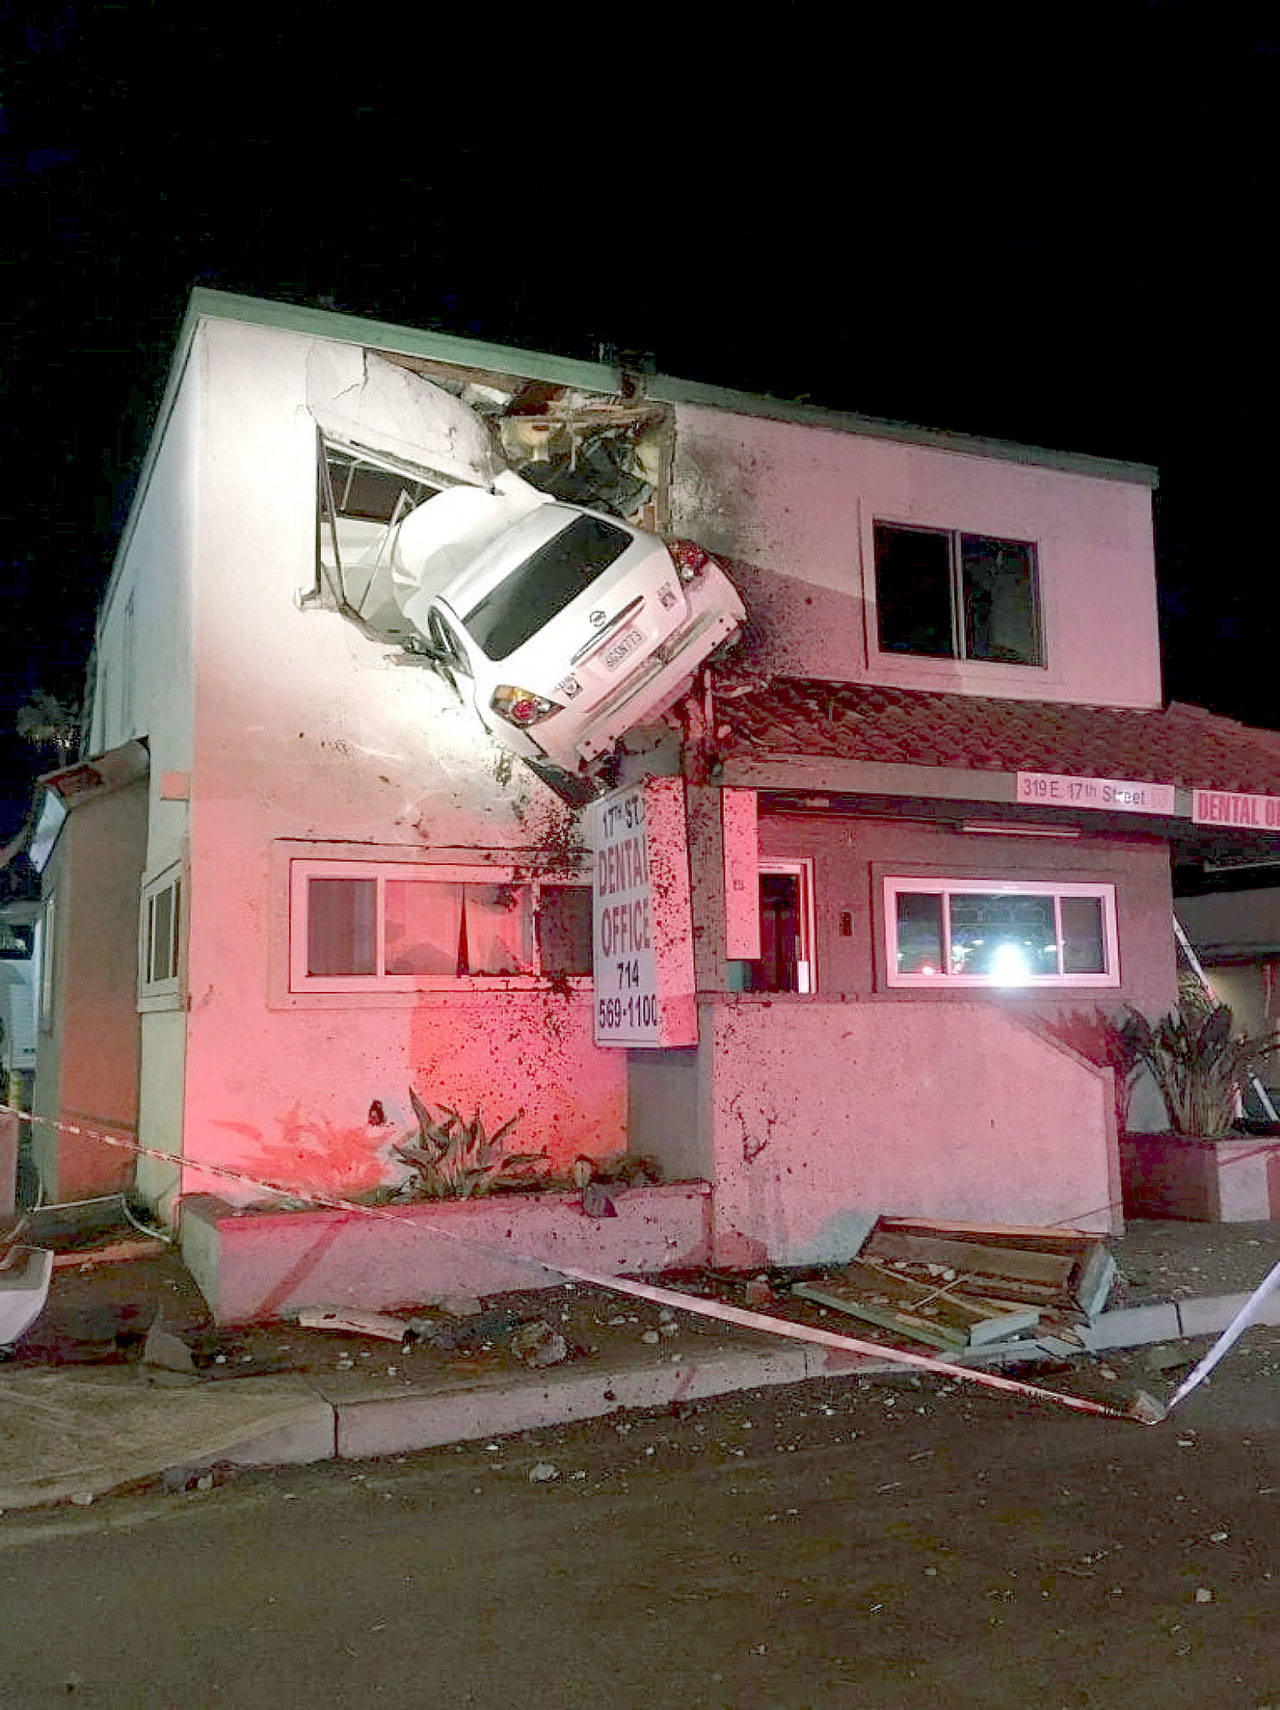 A Car Struck Center Divider Went Airborne And Crashed Into The Second Floor Of